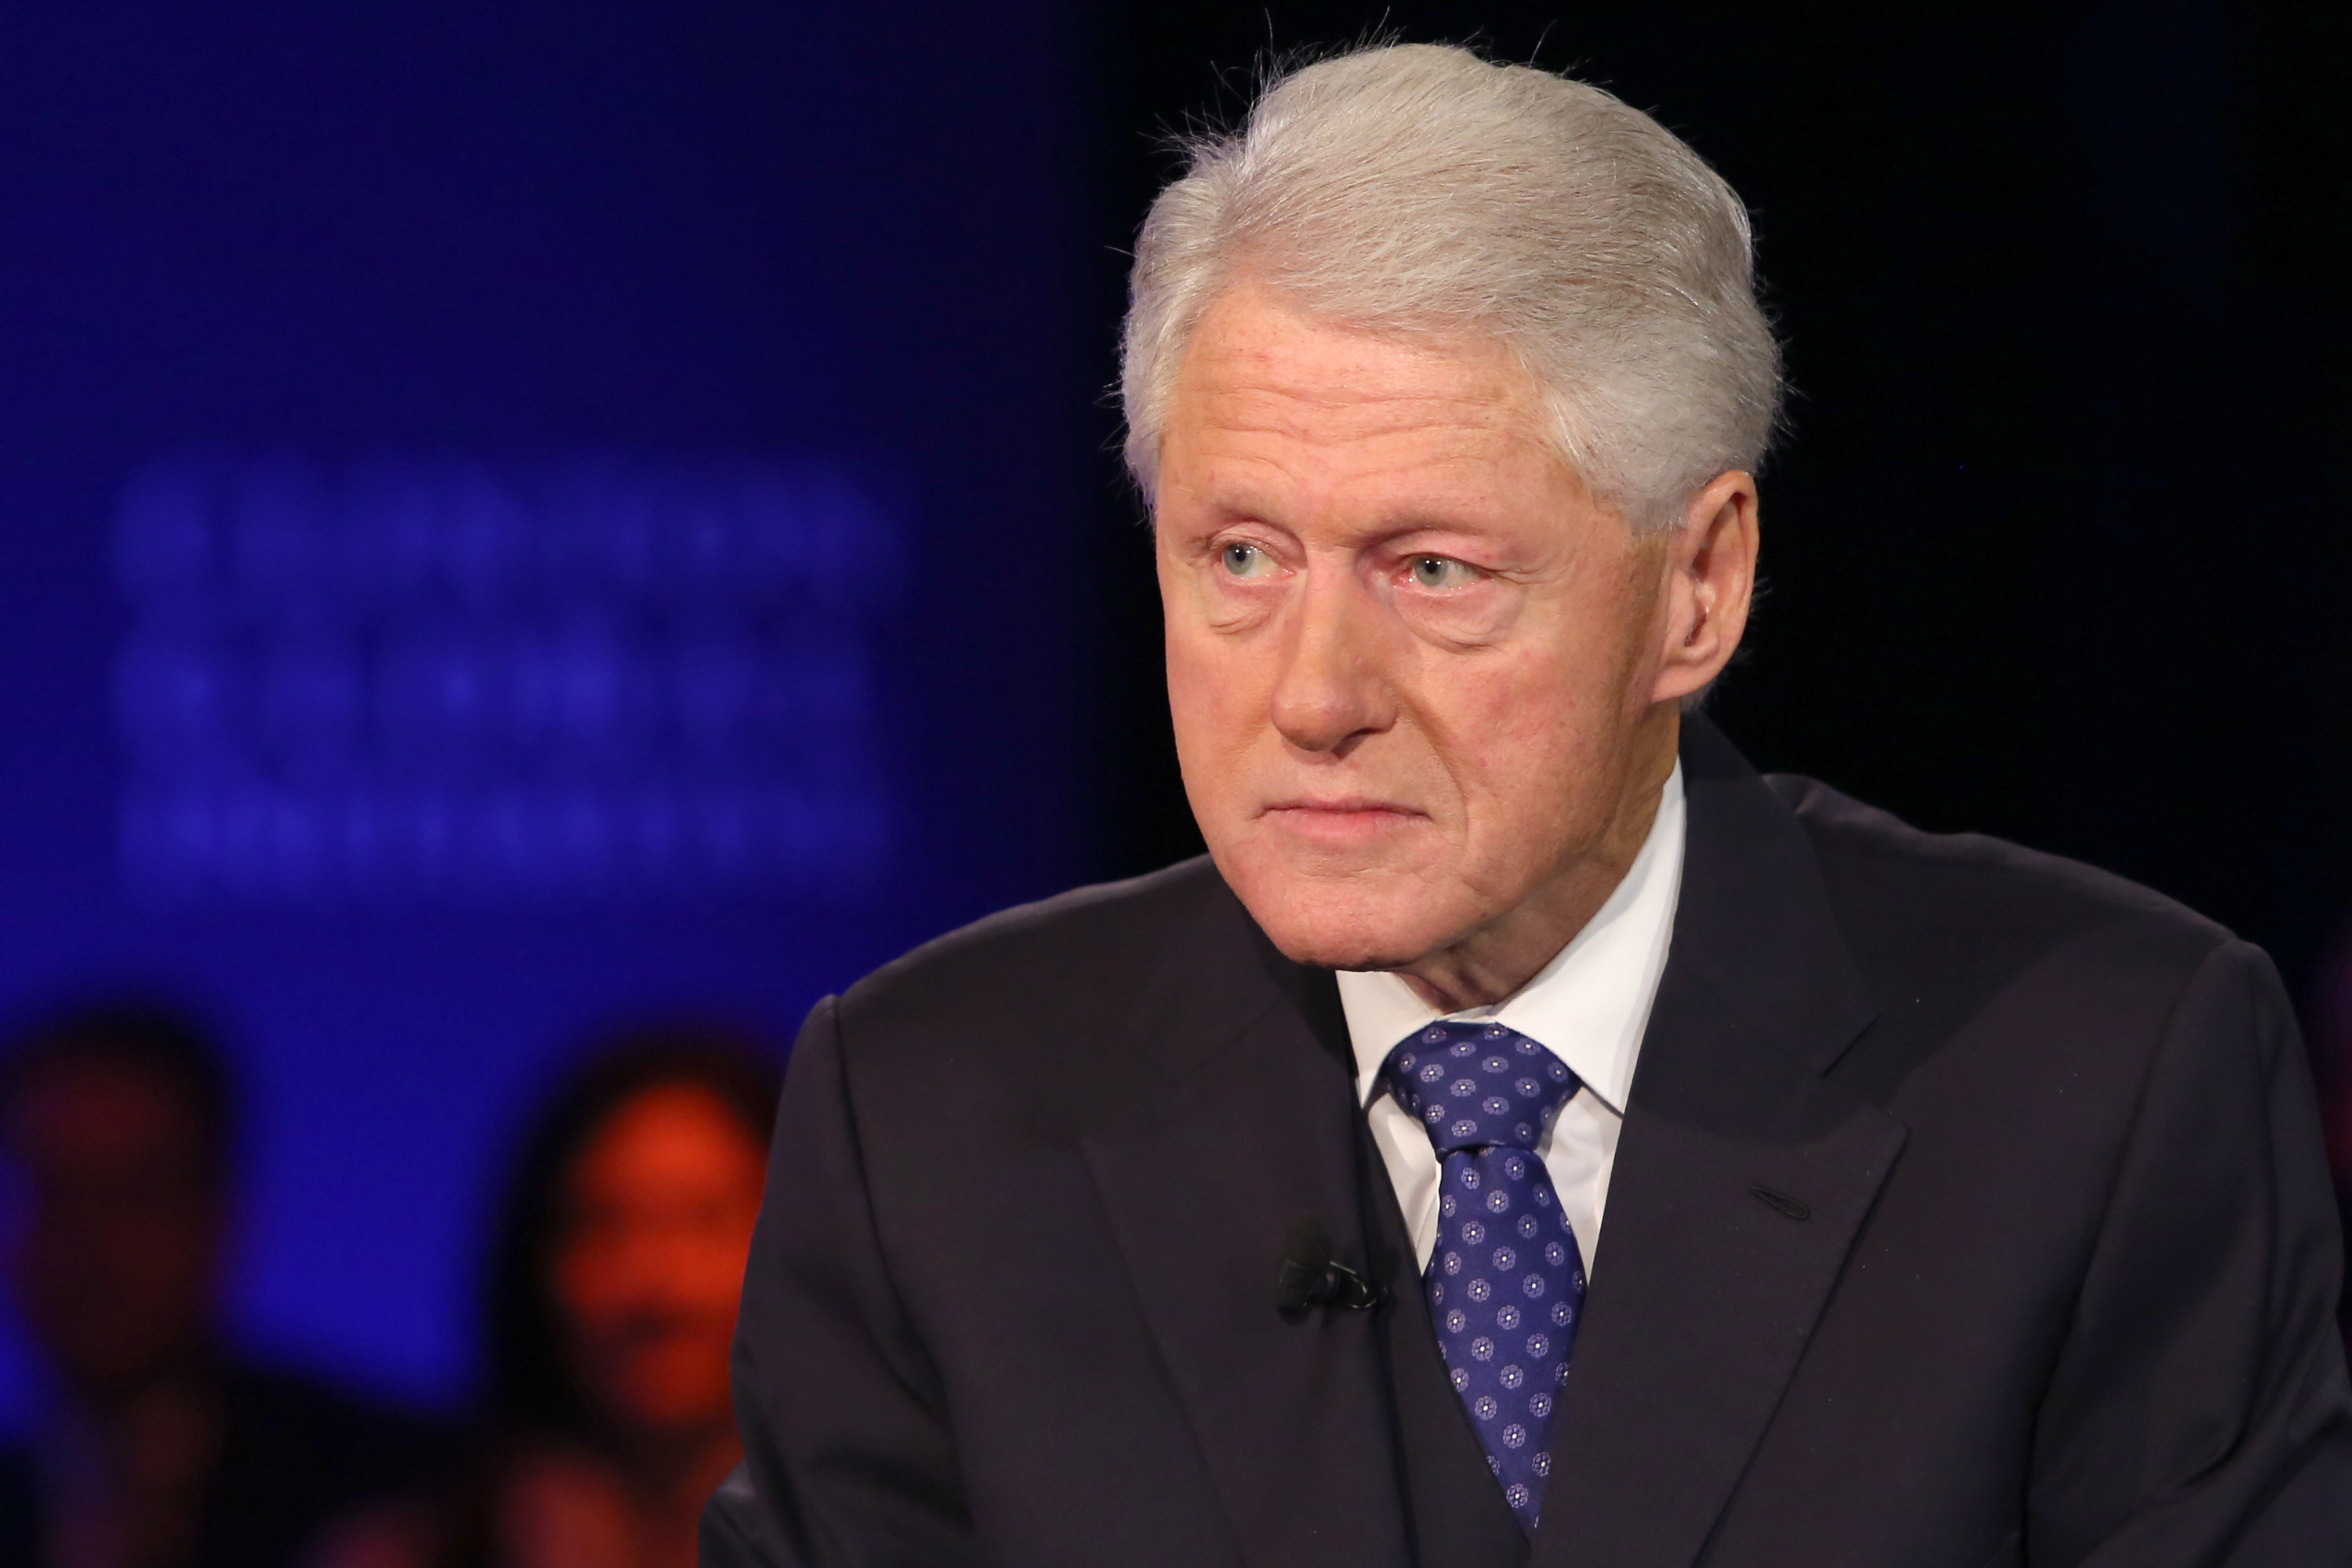 Former U.S. President Bill Clinton at the Clinton Global Initiative Annual Meeting, in New York City on September 29, 2015.